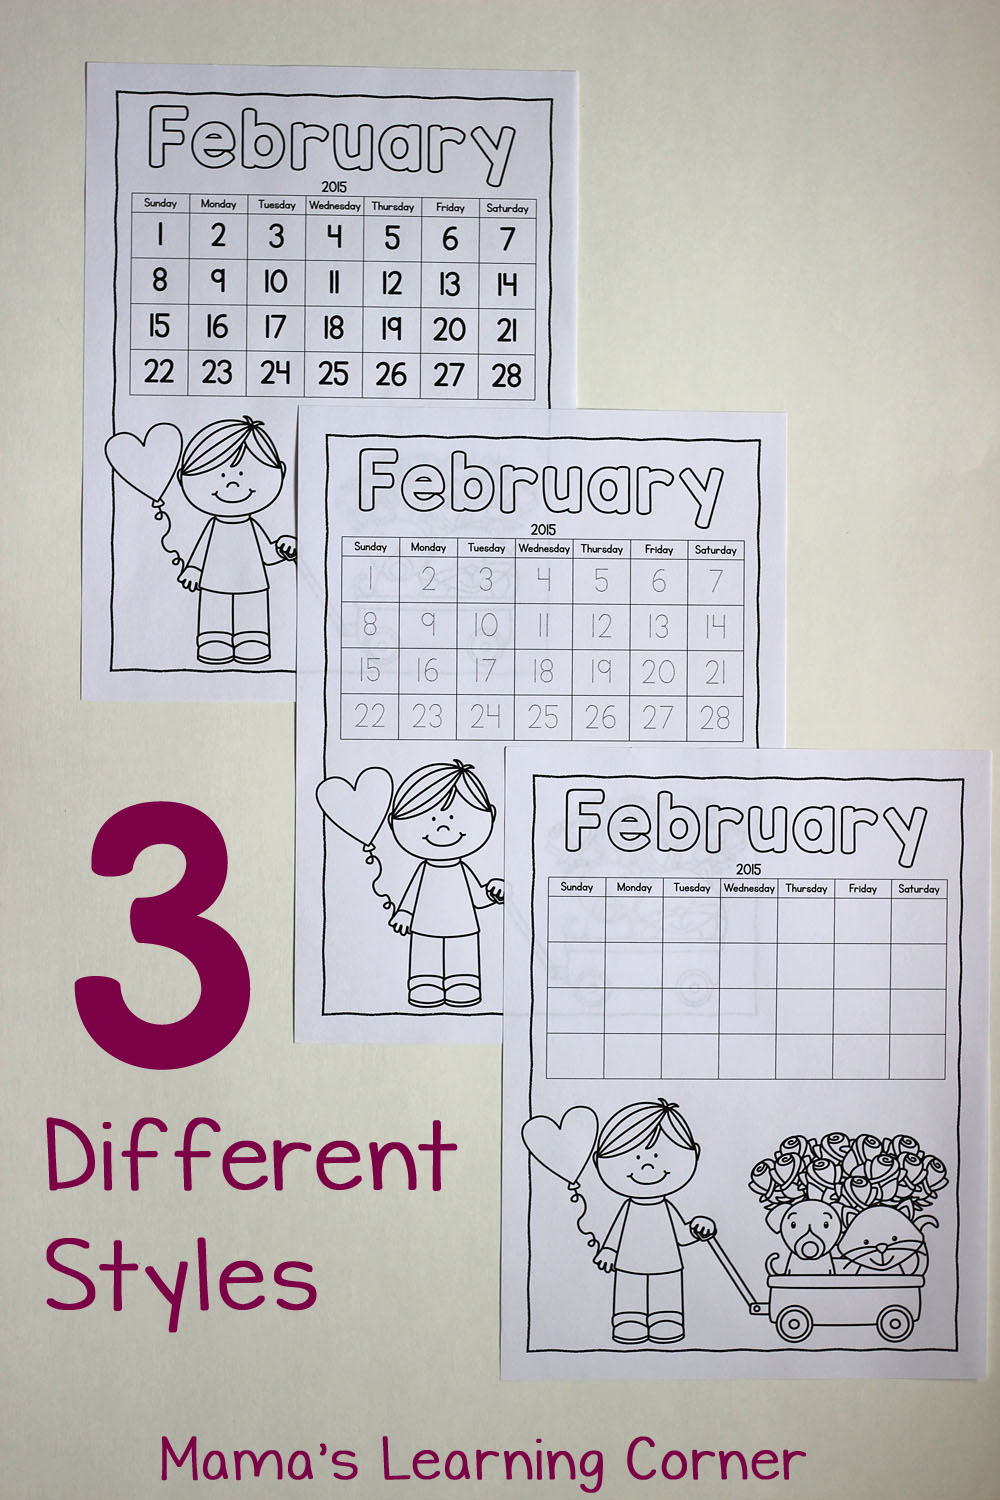 Color Your Own Calendar: 3 Different Styles